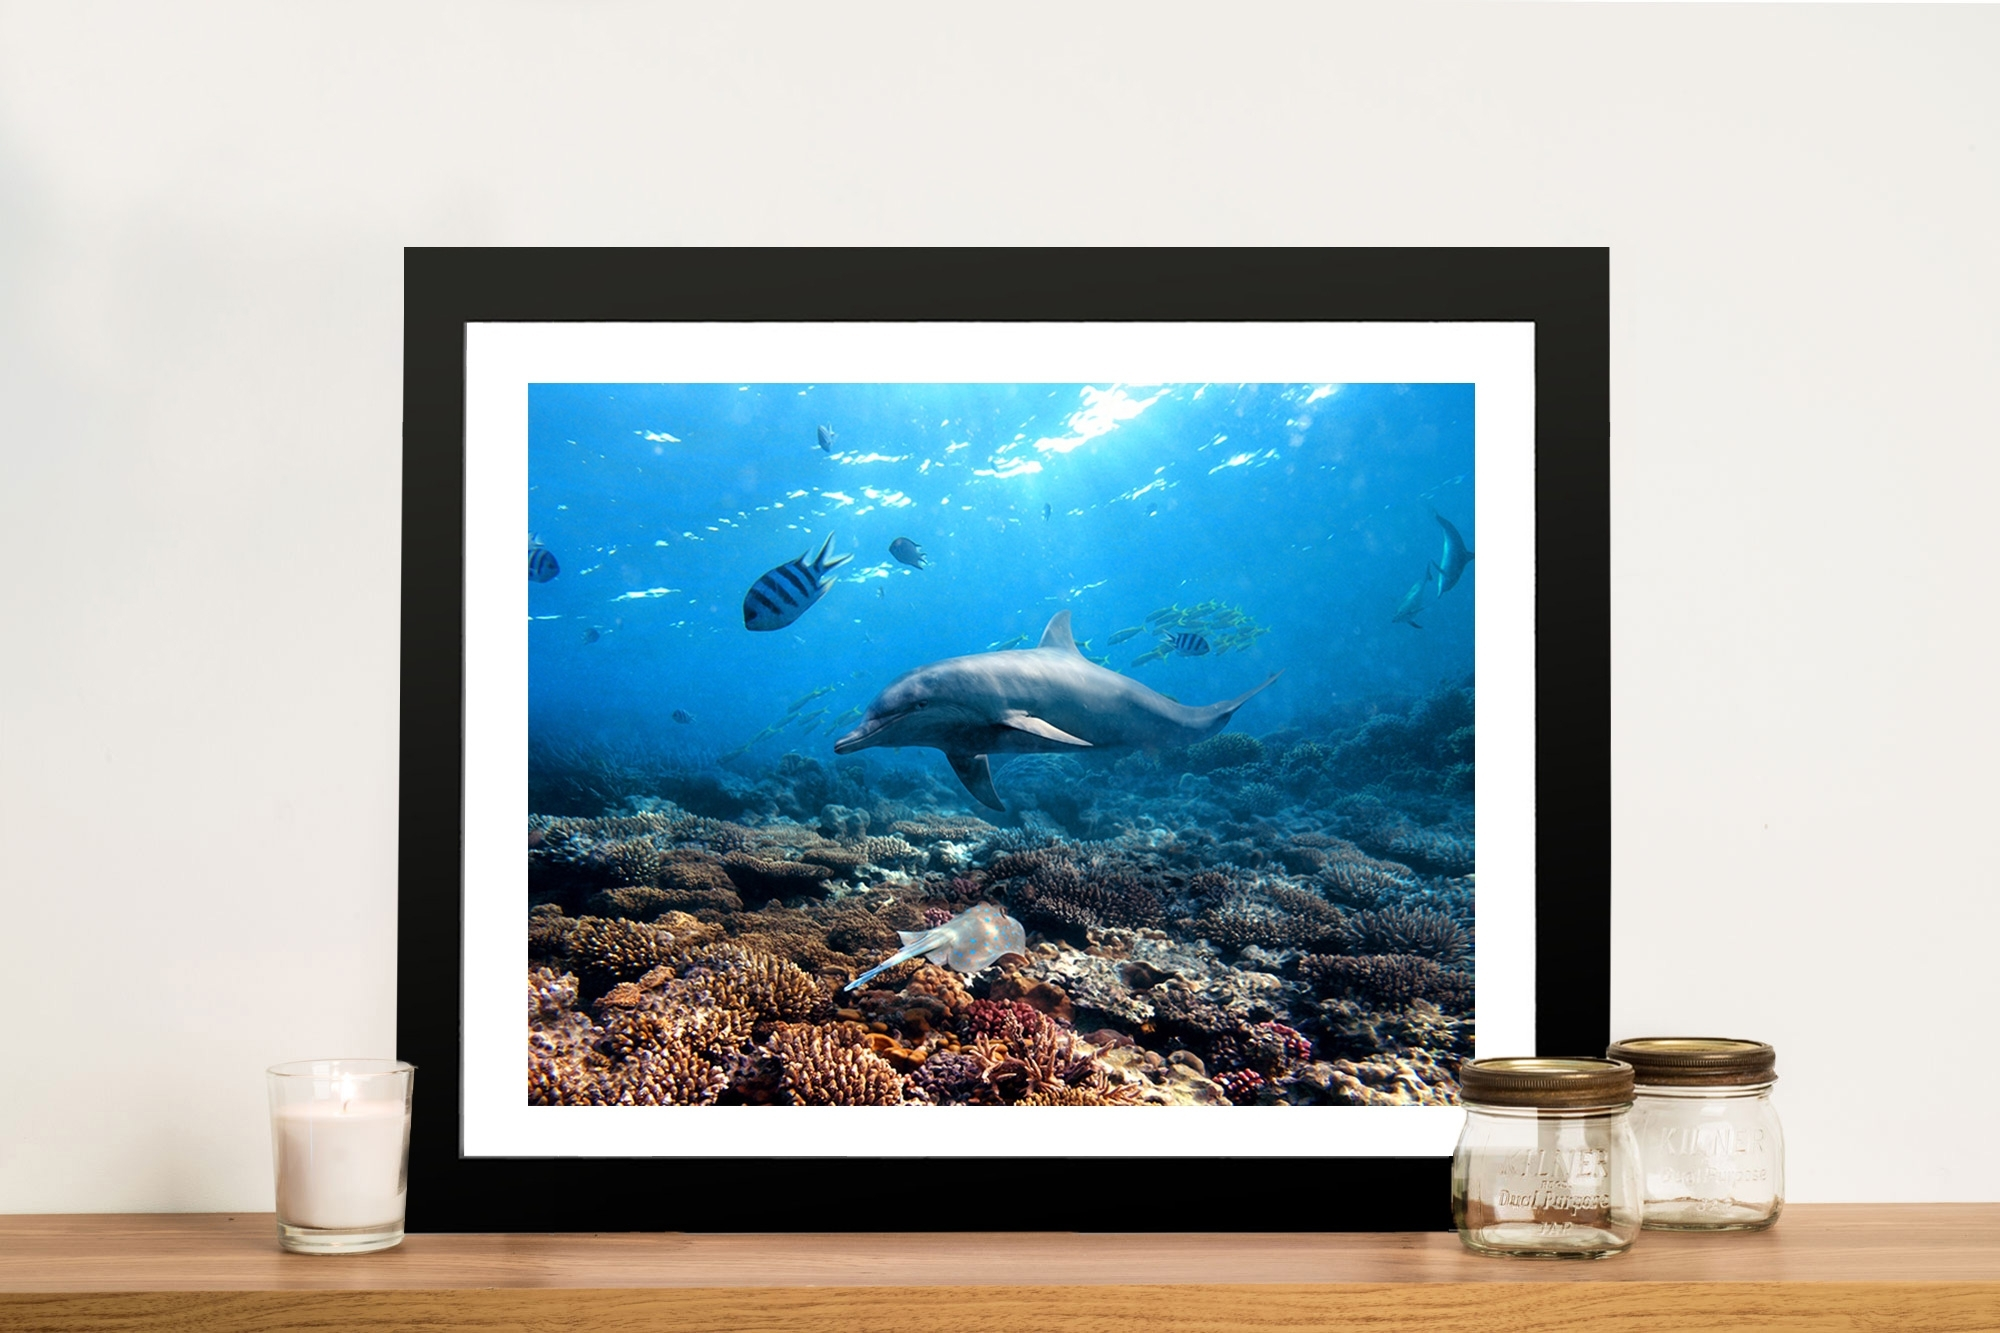 Buy Dolphins Canvas Prints Geelong Melbourne Australia In Most Recently Released Geelong Canvas Wall Art (View 3 of 15)